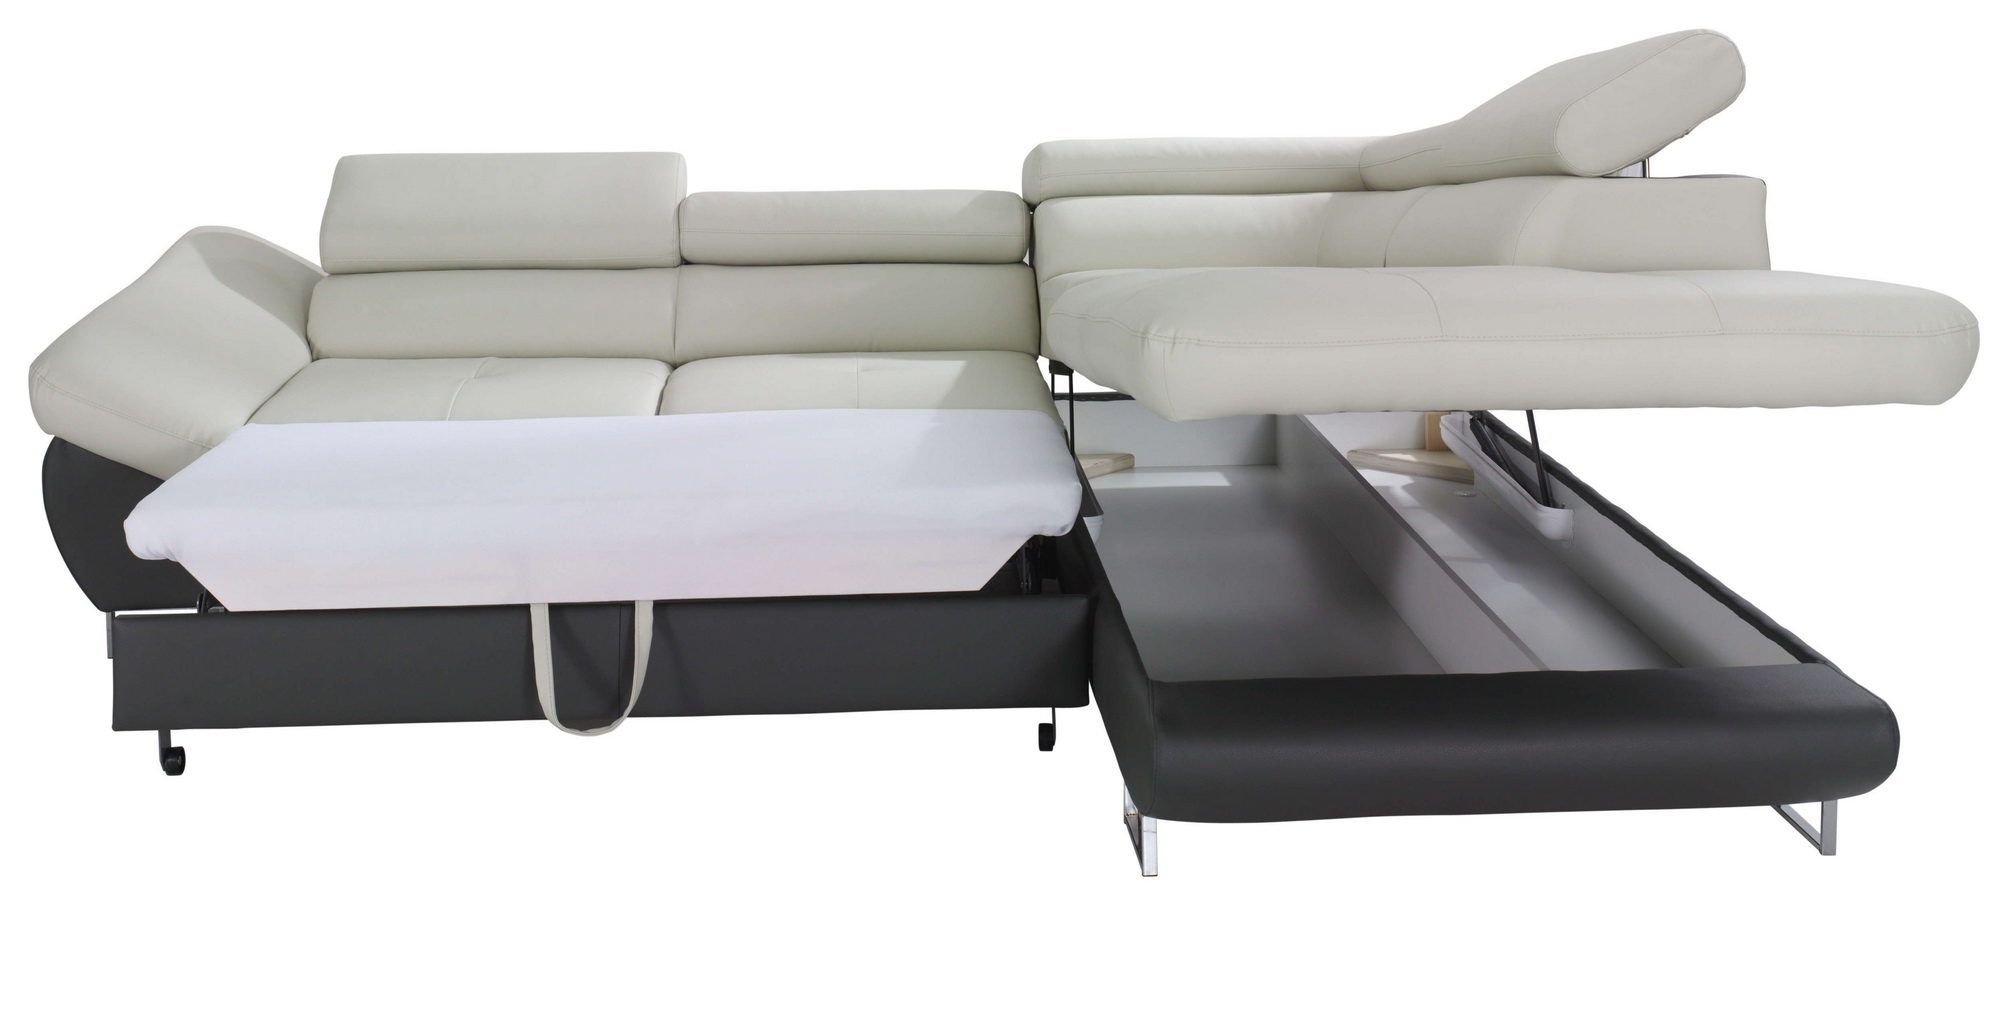 Taren Reversible Sofa/chaise Sleeper Sectionals With Storage Ottoman In Latest Probably Terrific Free Sectional Sofa With Chaise And Sleeper Pic (View 15 of 20)